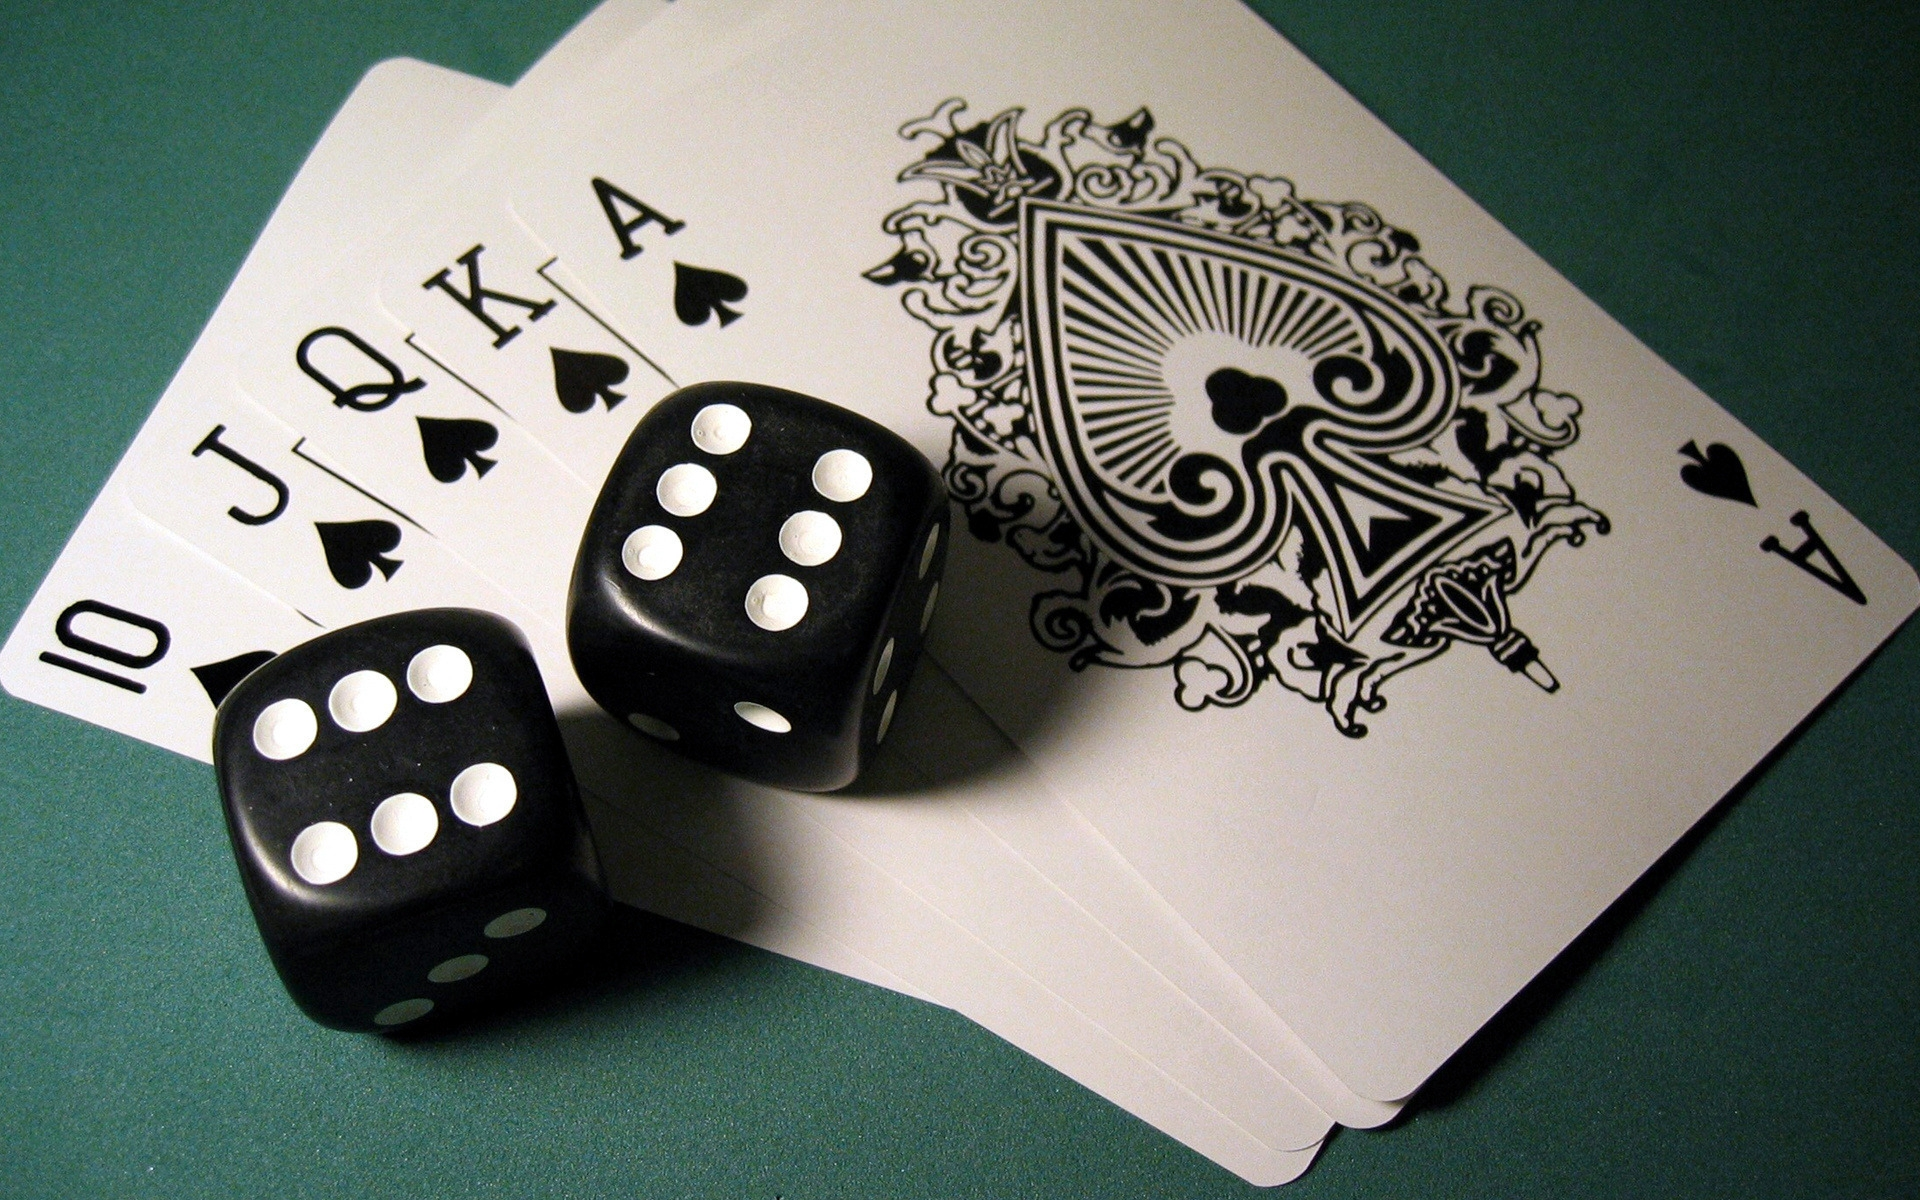 Four Ways To Reinvent Your Gambling